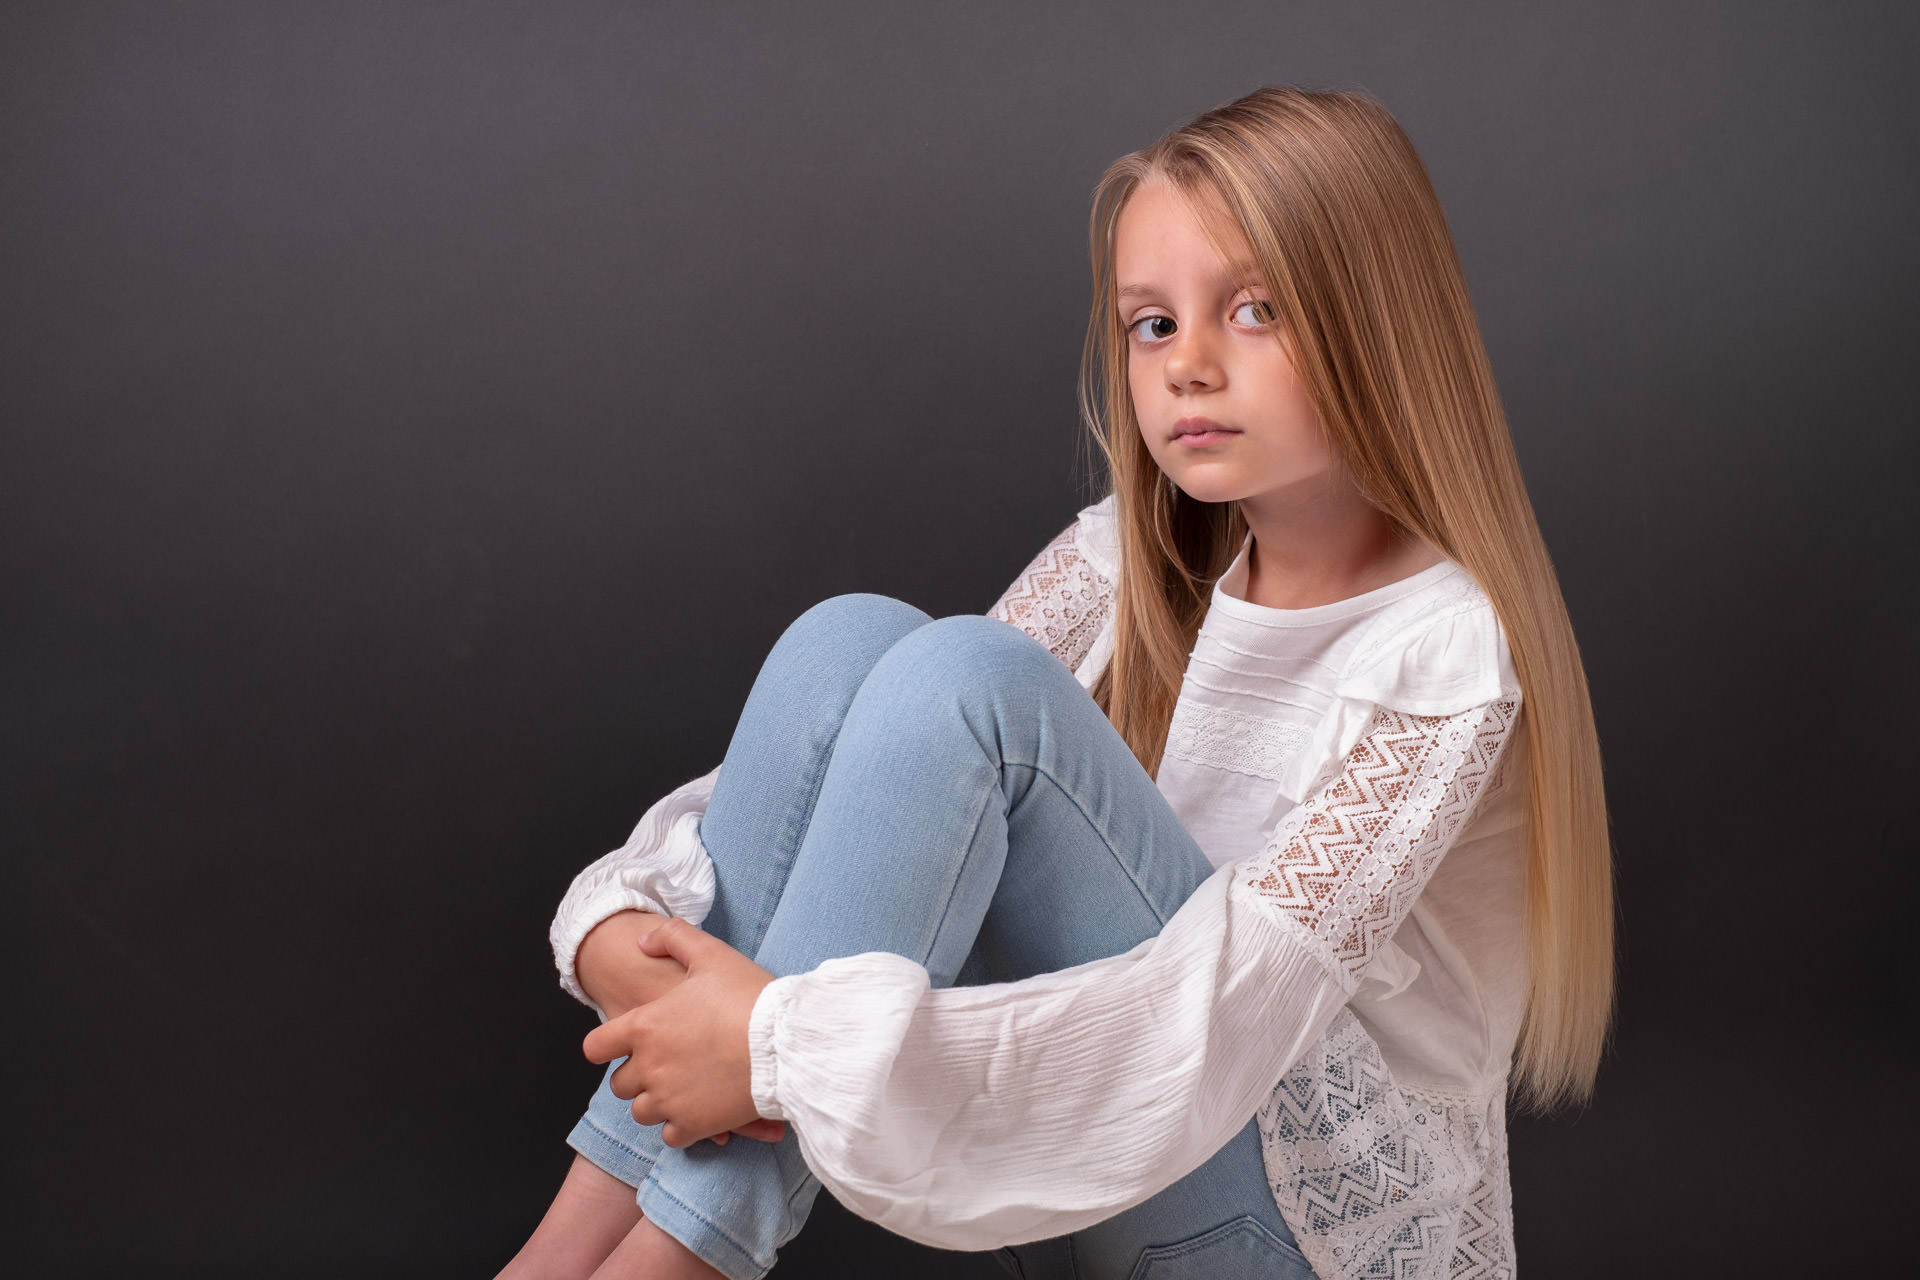 portrait photo of girl in studio